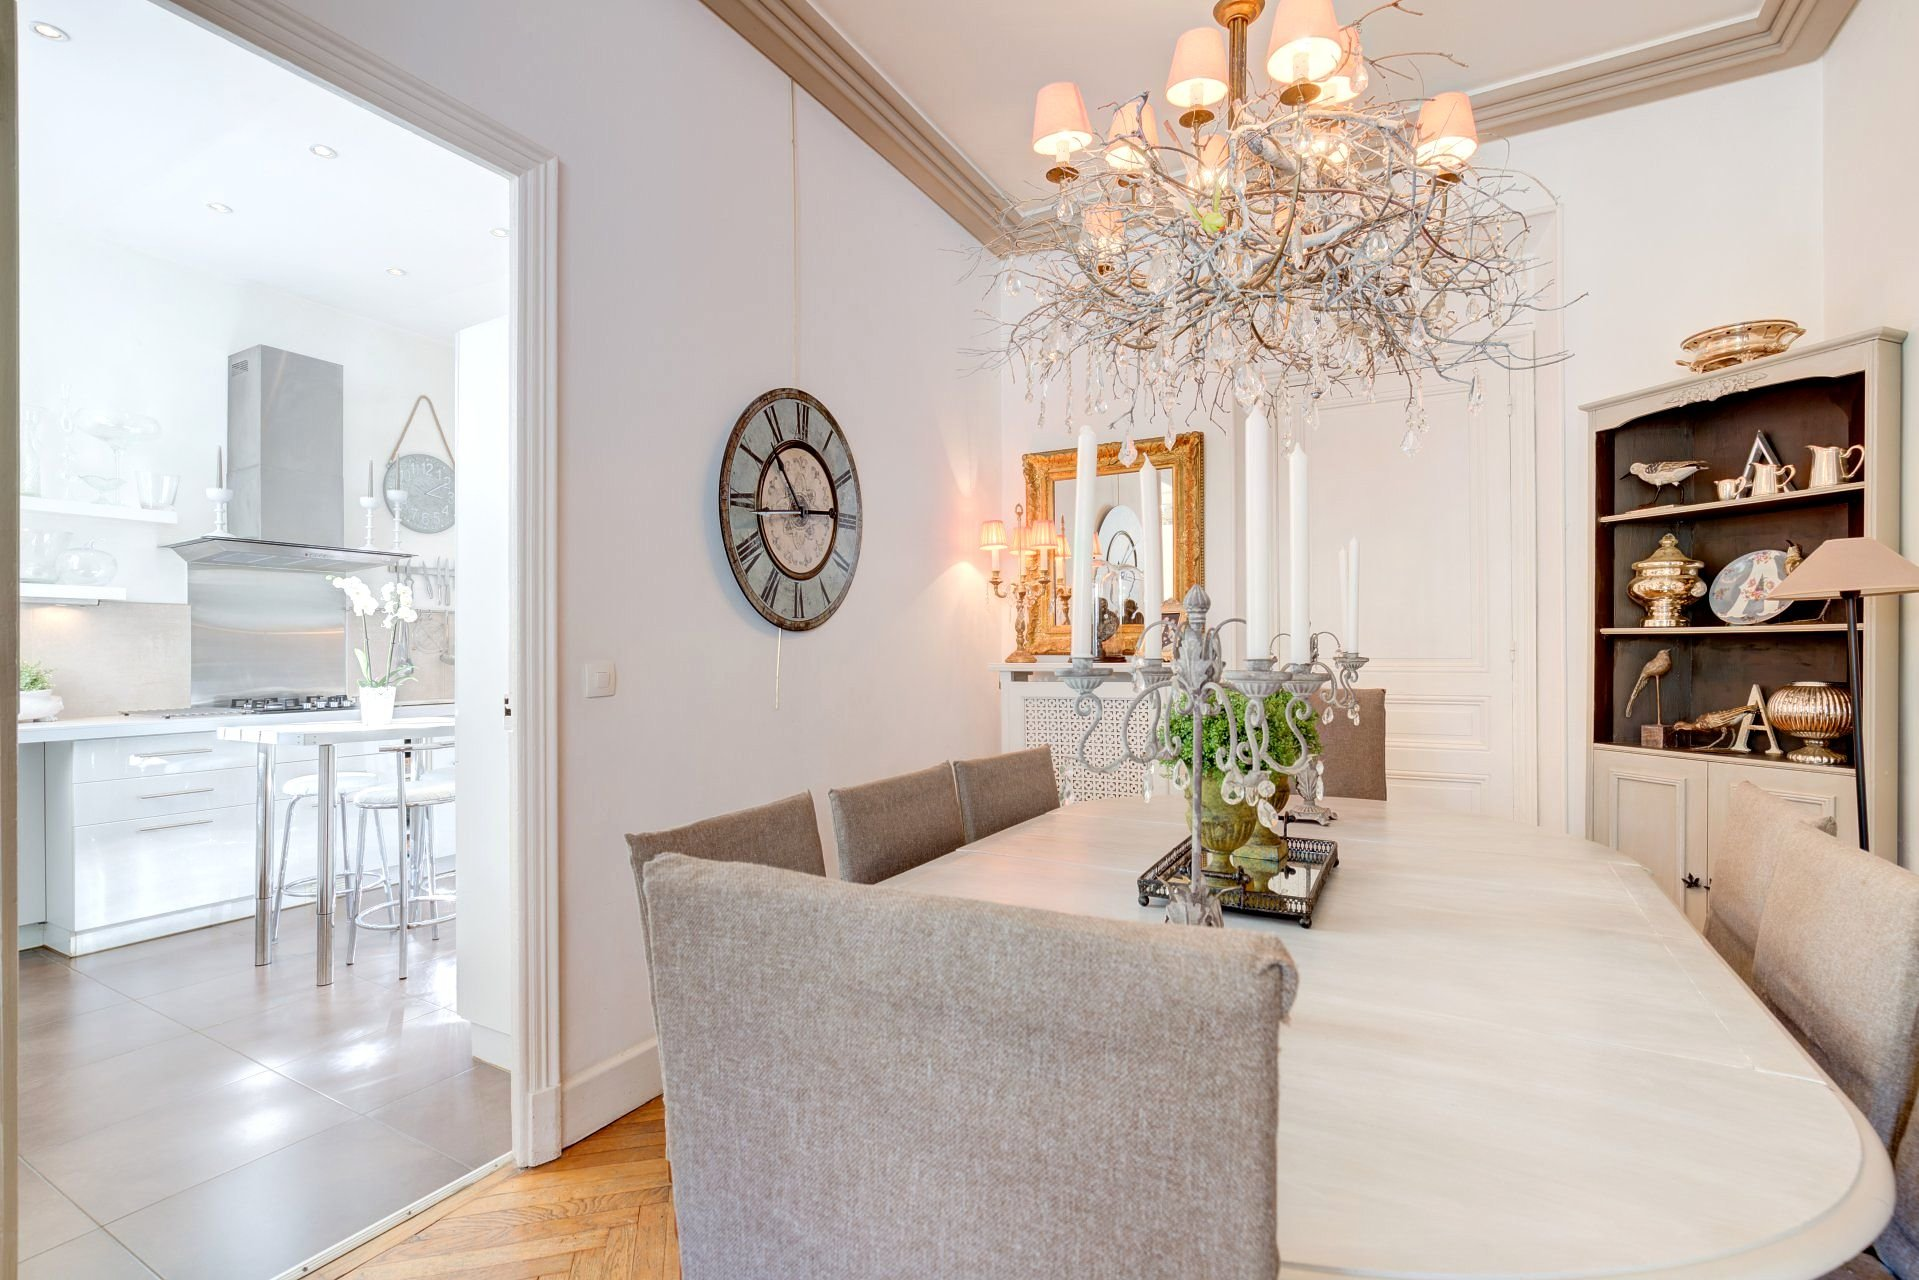 Elegant Belle Epoque villa within walking distance of the city center